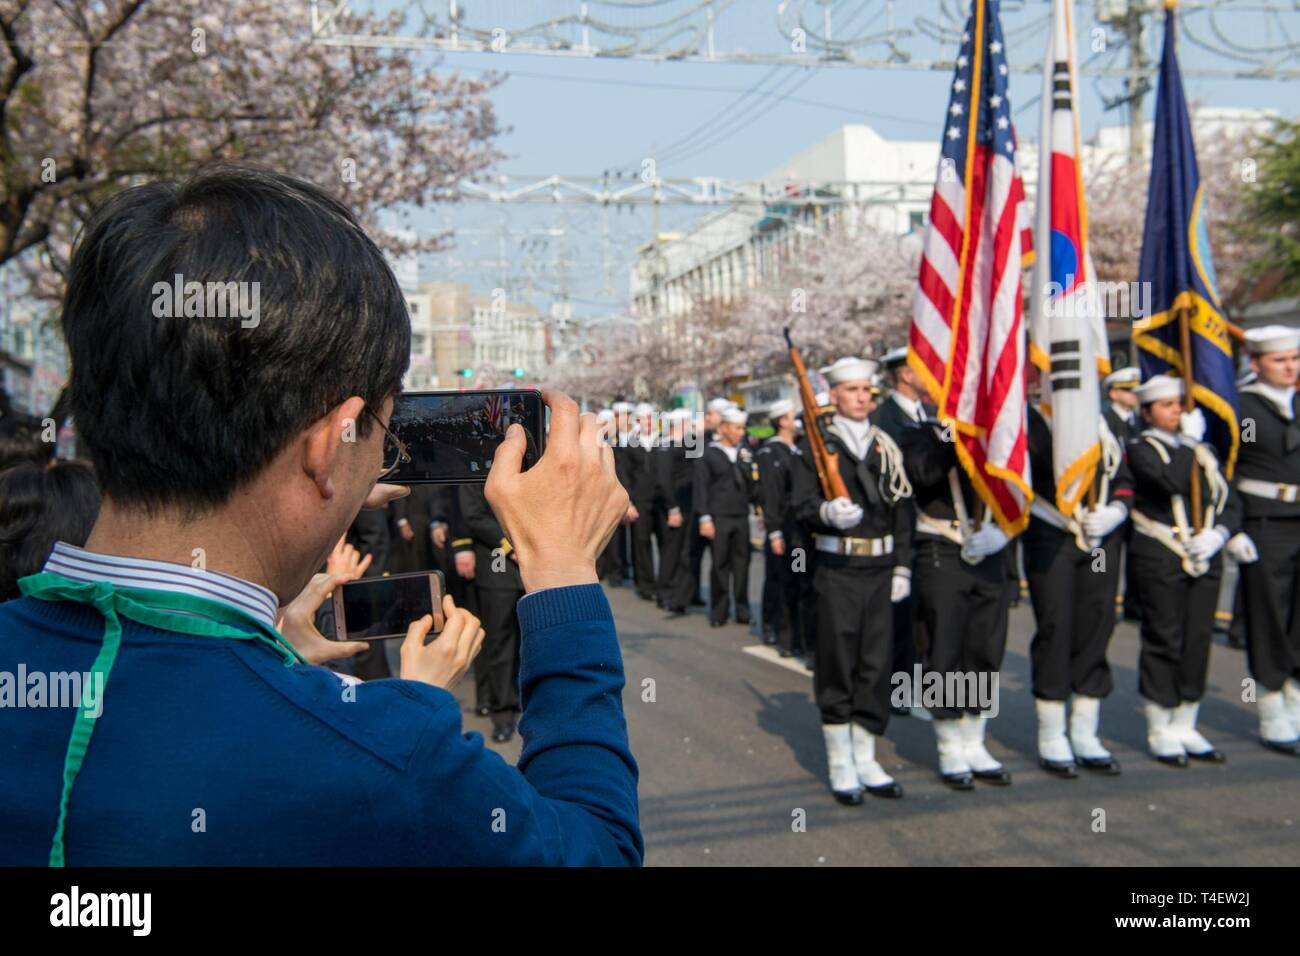 CHINHAE, Republic of Korea (April 05, 2019) Sailors assigned to Commander, Fleet Activities Chinhae (CFAC) march in the 57th annual Jinhae Gunhangje military port festival parade. The festival honors Admiral Yi Sun-sin, a great naval hero of Korea, whose victories still inform the fighting spirit of the ROK Navy. Stock Photo